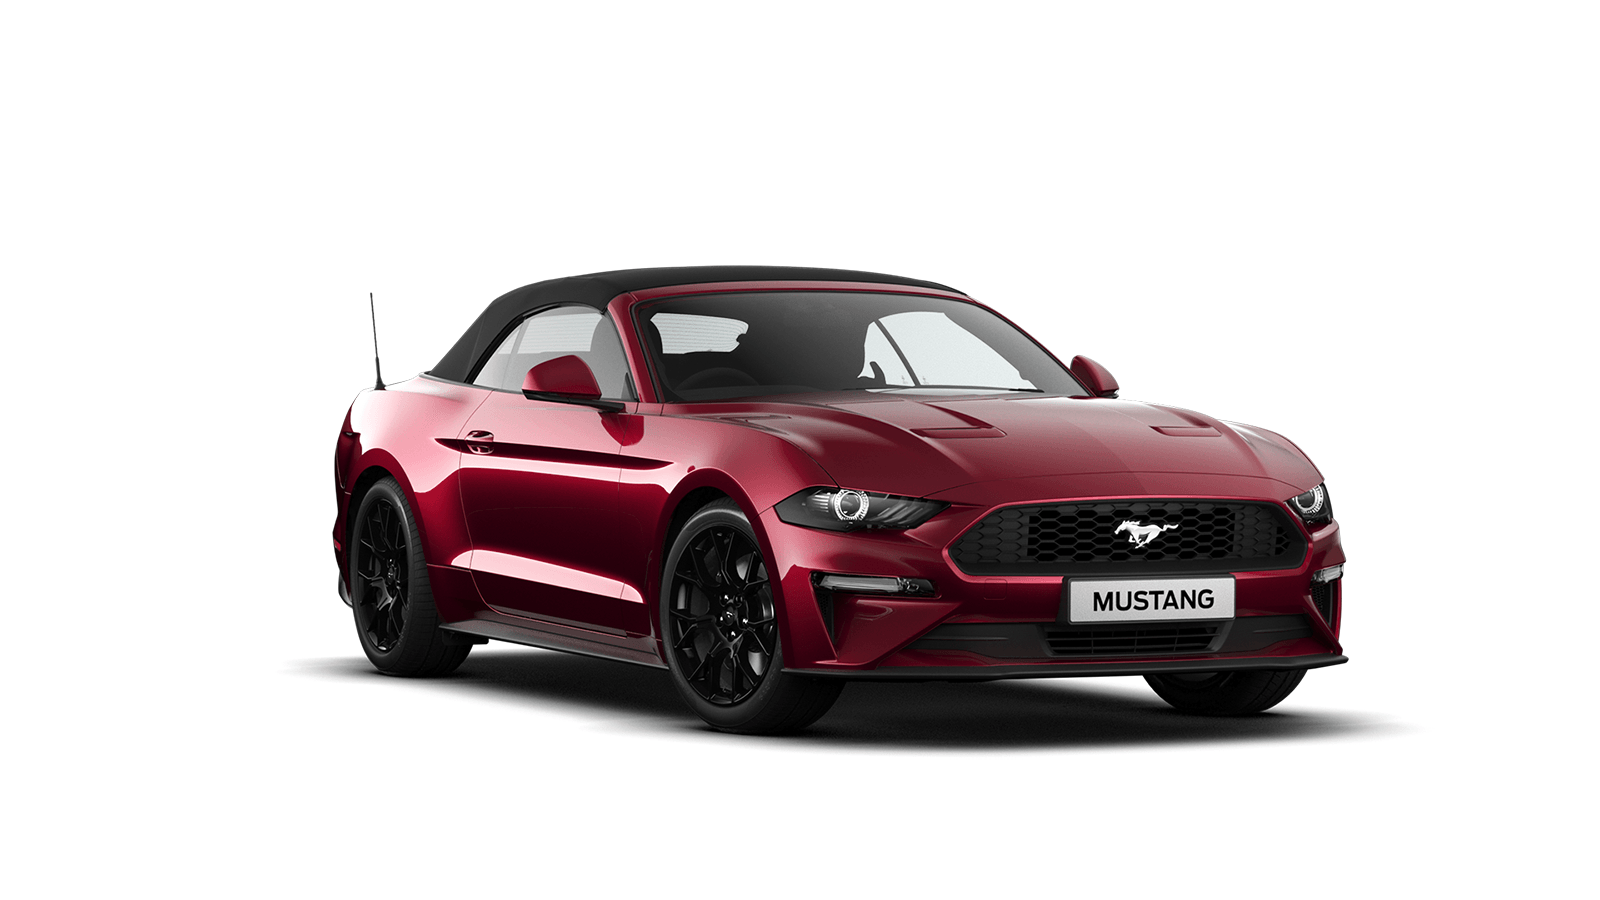 NEW MUSTANG 2.3 EcoBoost Convertible in Ruby Red